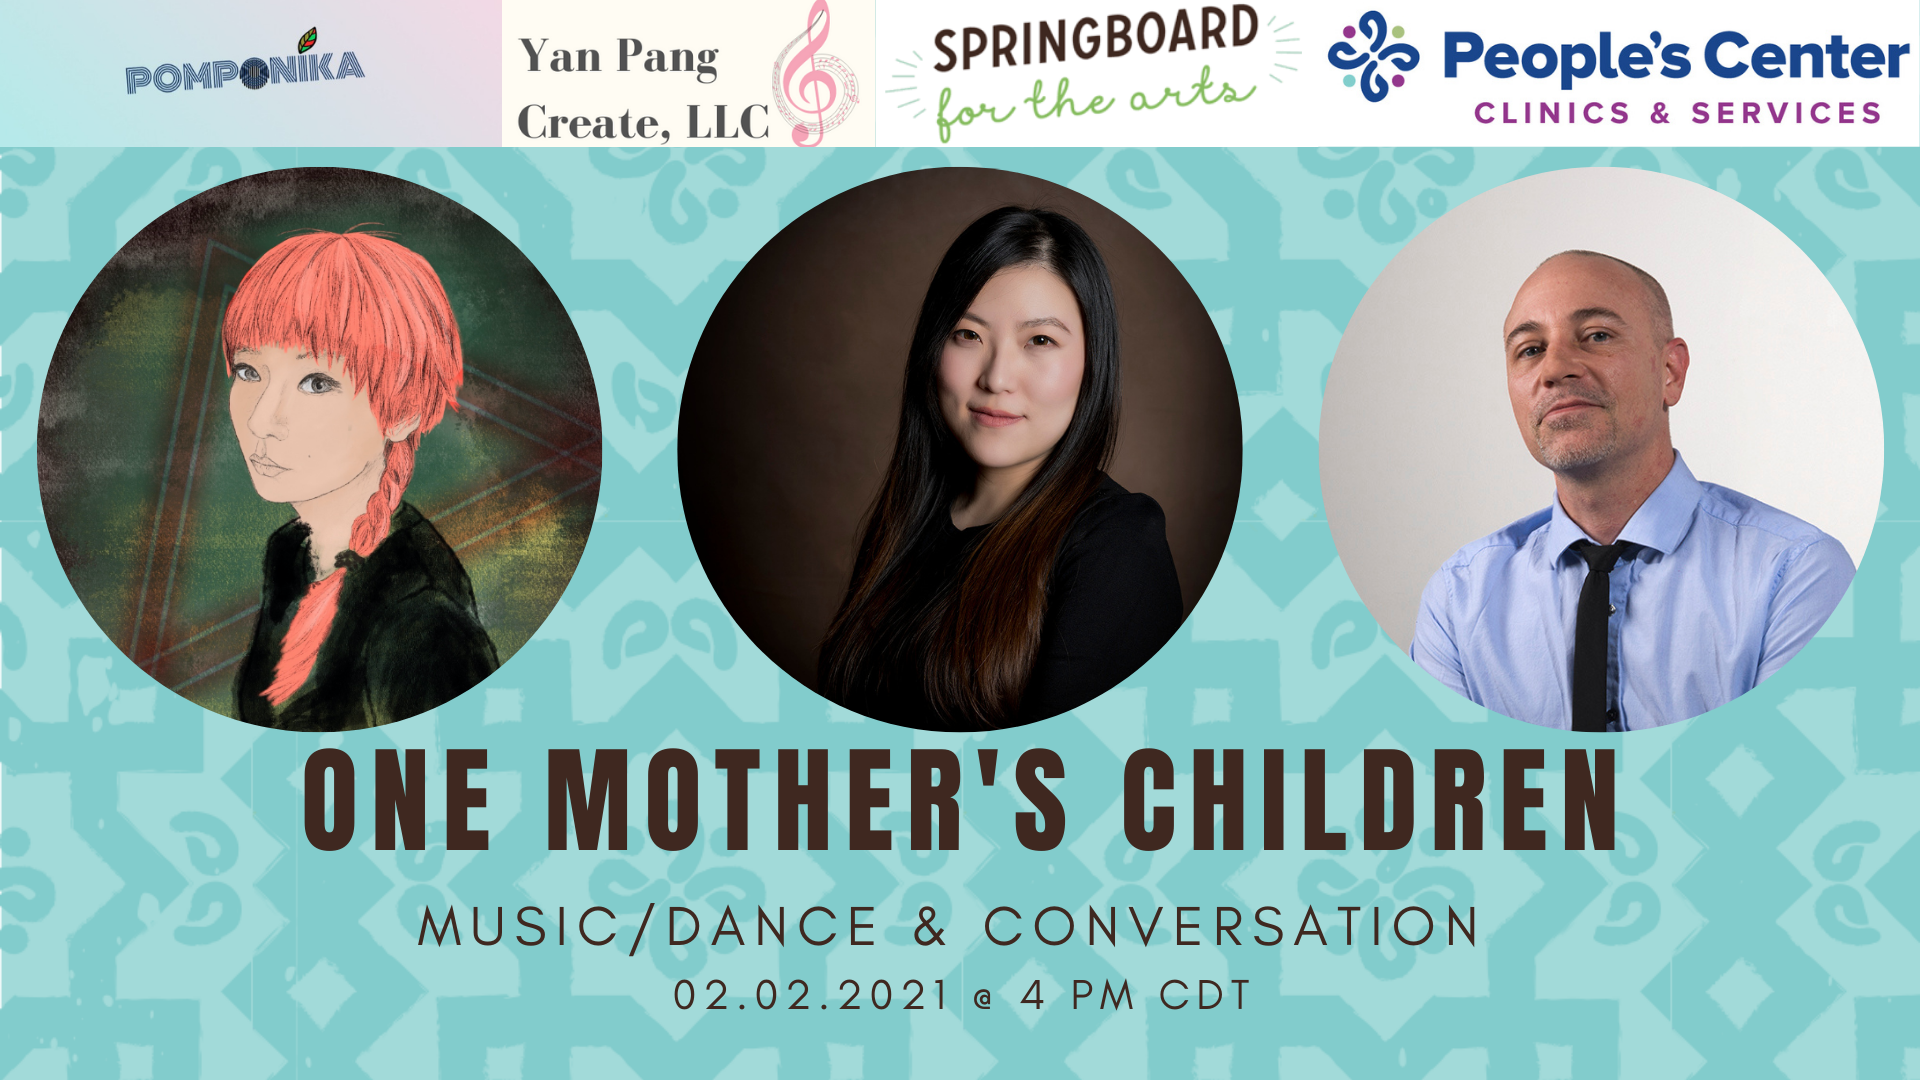 Yan Pang's One Mother's Children event poster